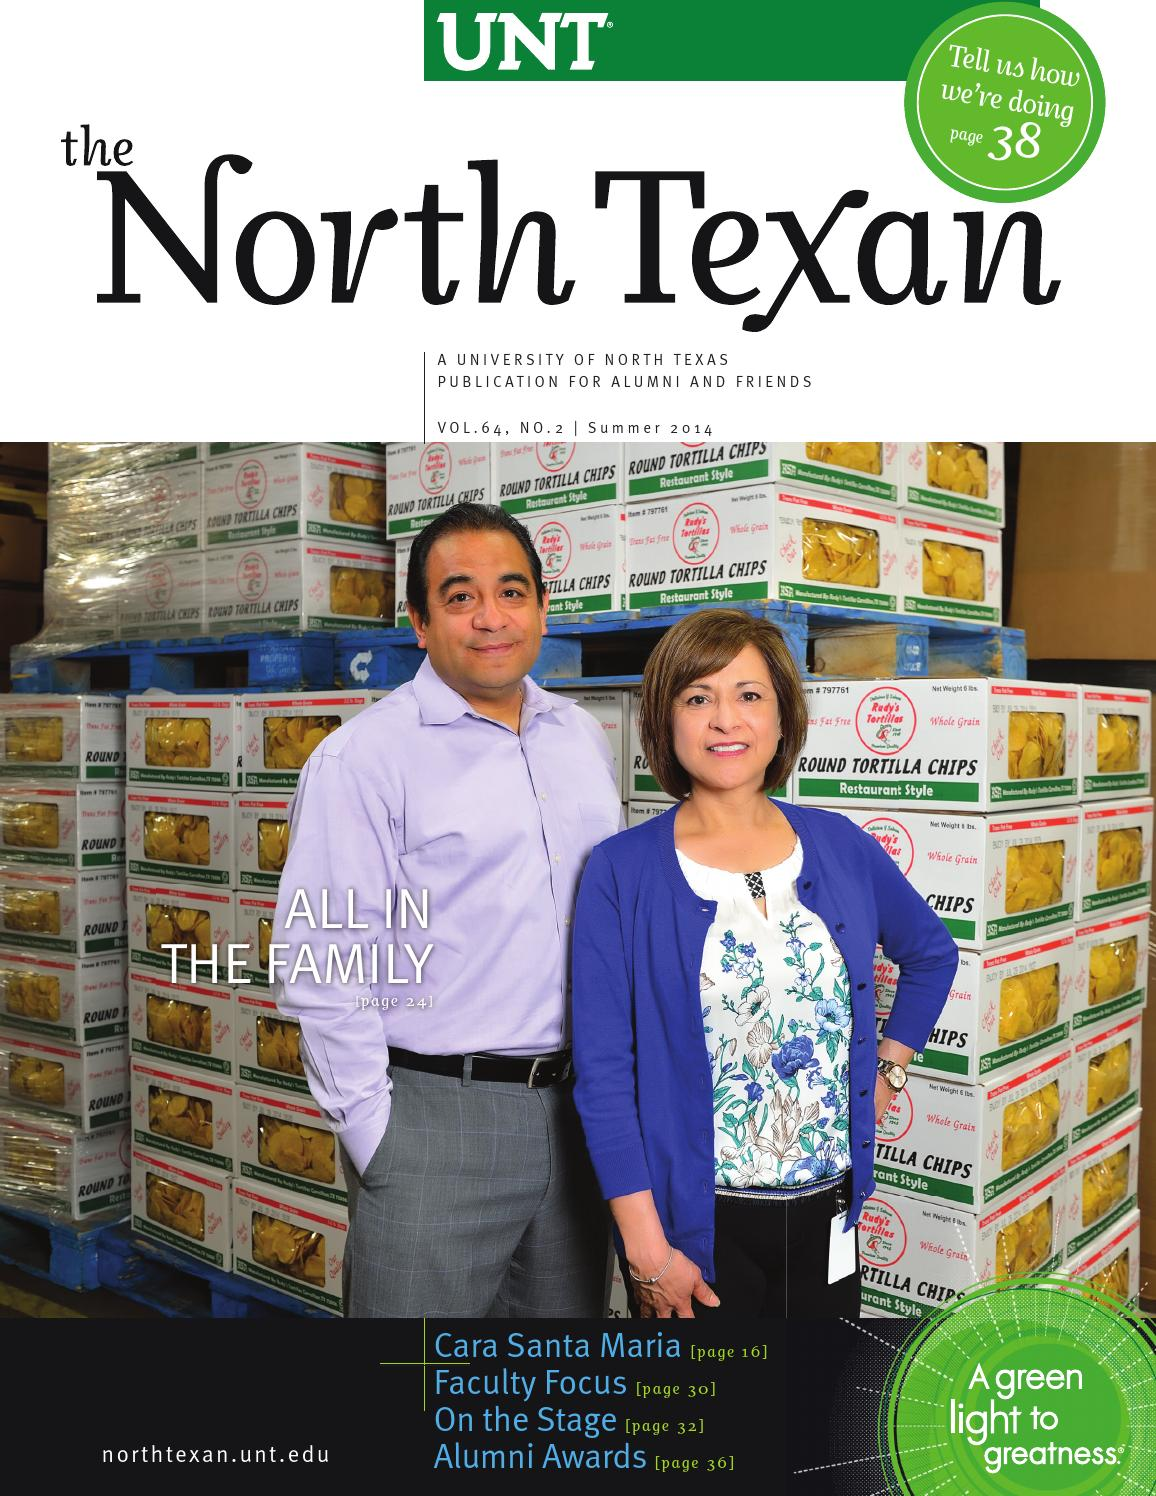 Alumni want to order a duplicate diploma that says thomas edison - The North Texan Unt Alumni Magazine Summer 2014 By University Of North Texas Issuu